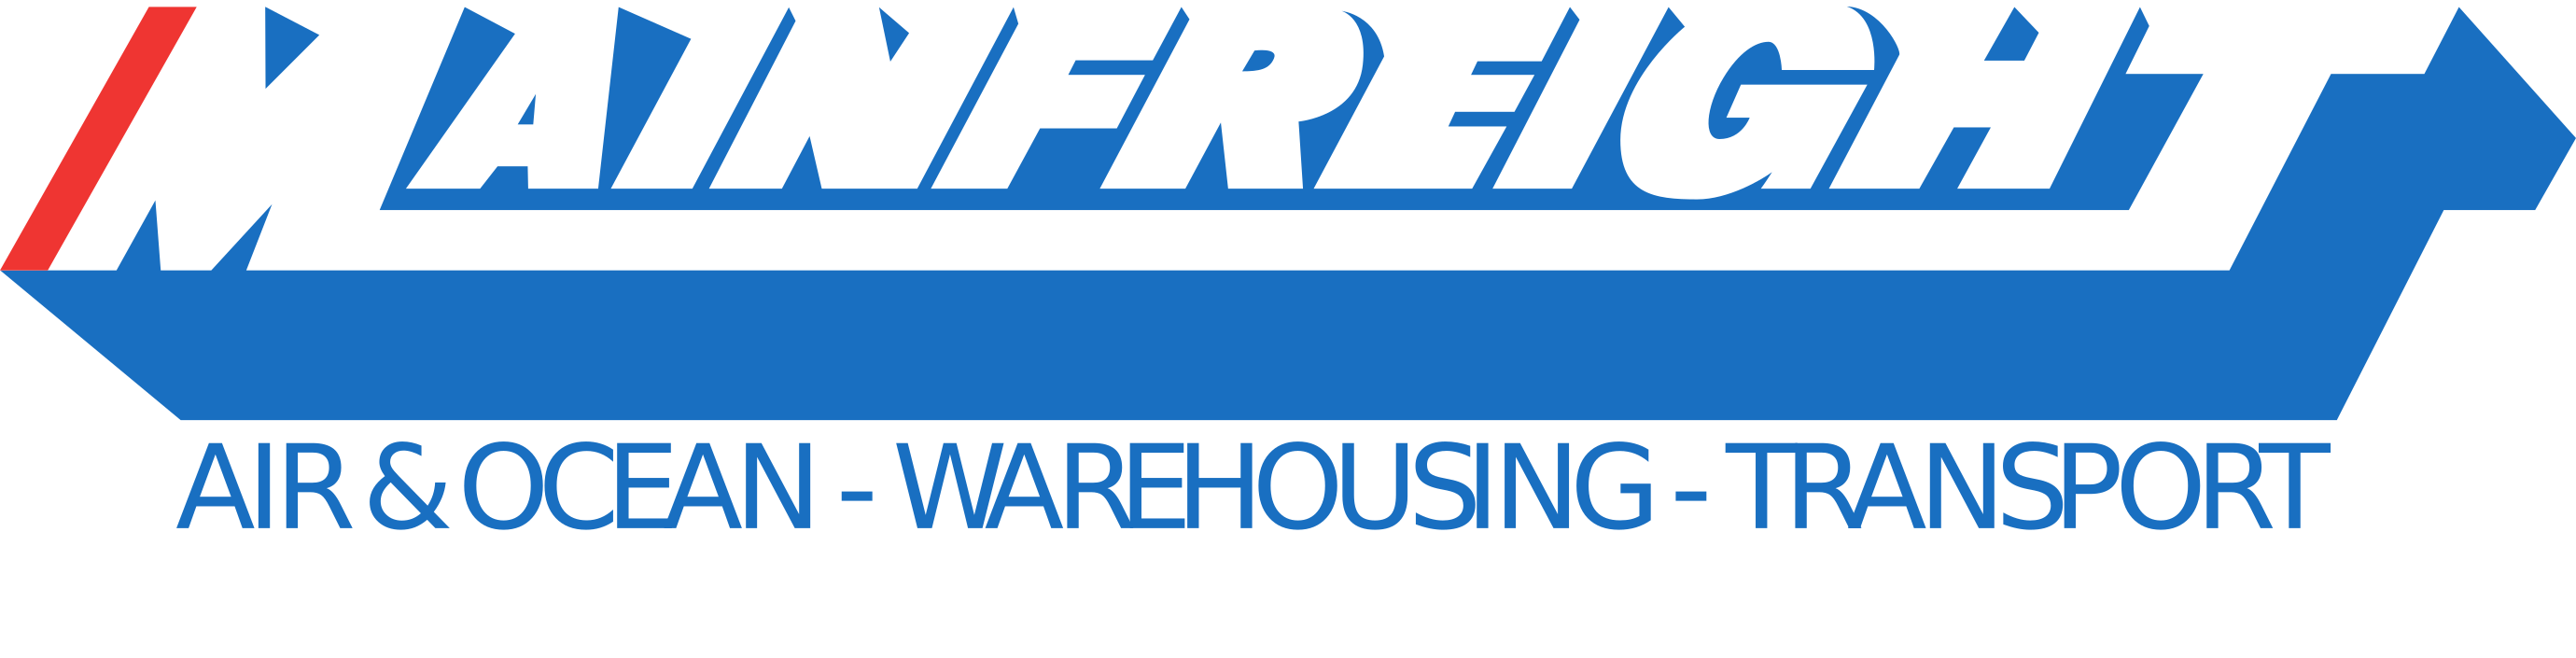 Mainfreight logo